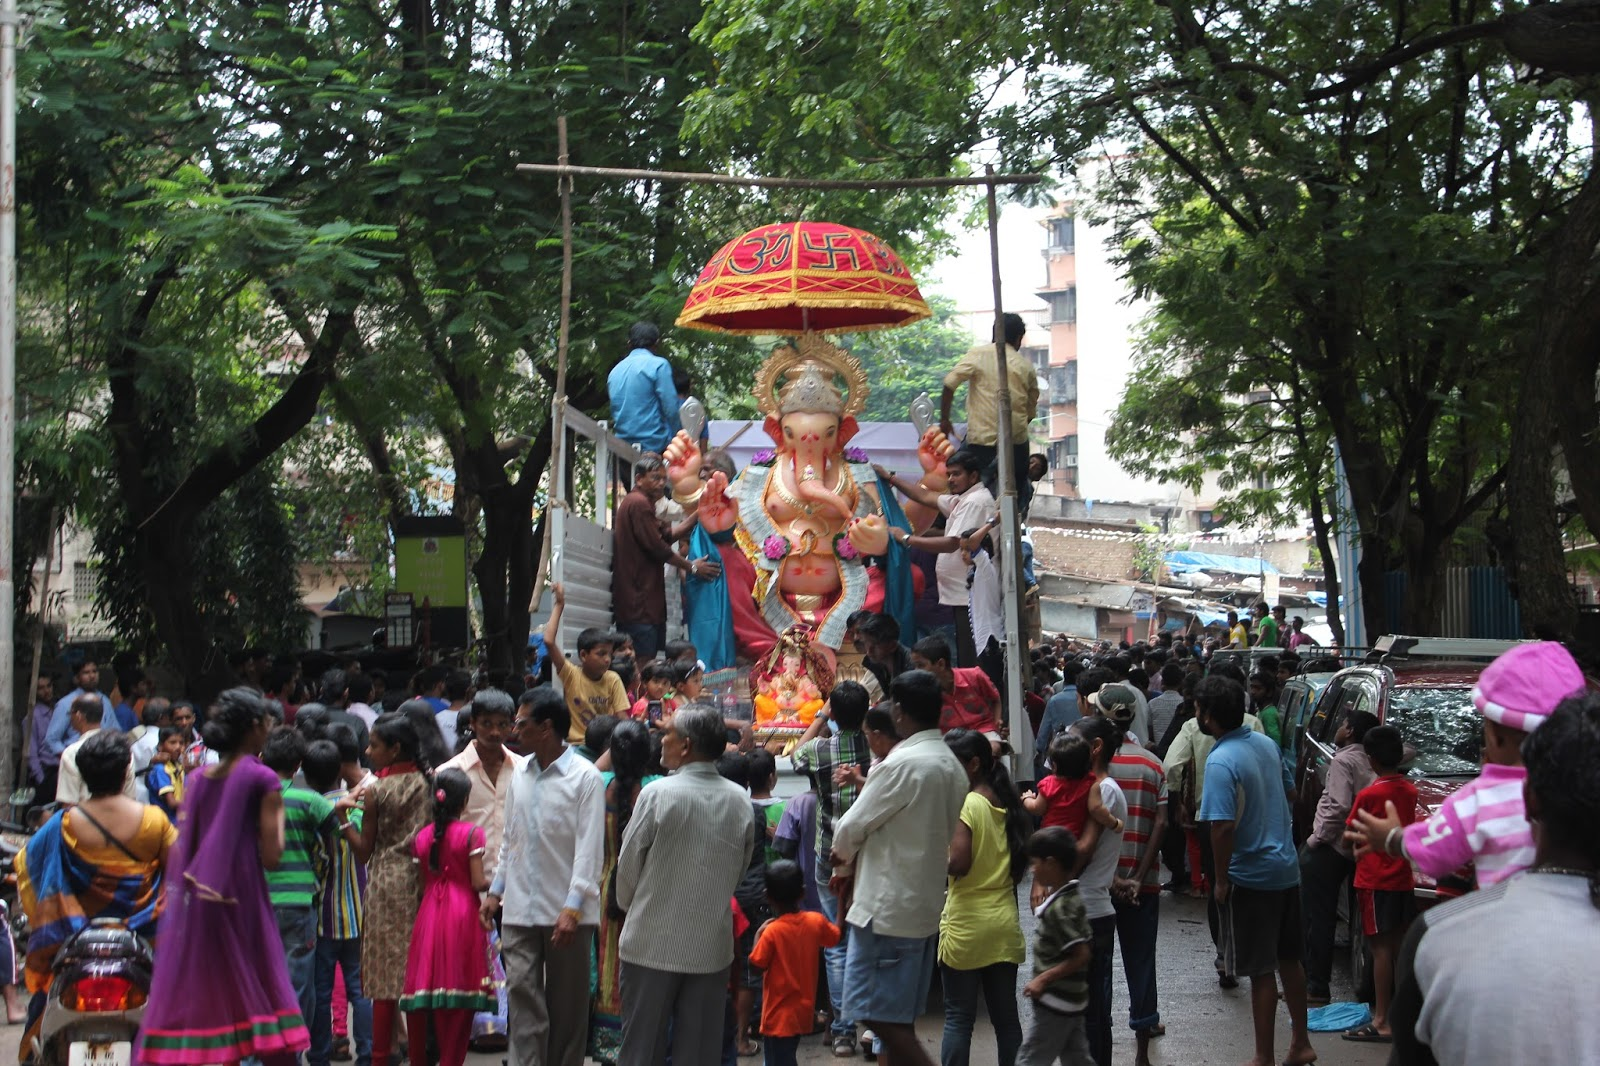 This is the big Ganesha statue for